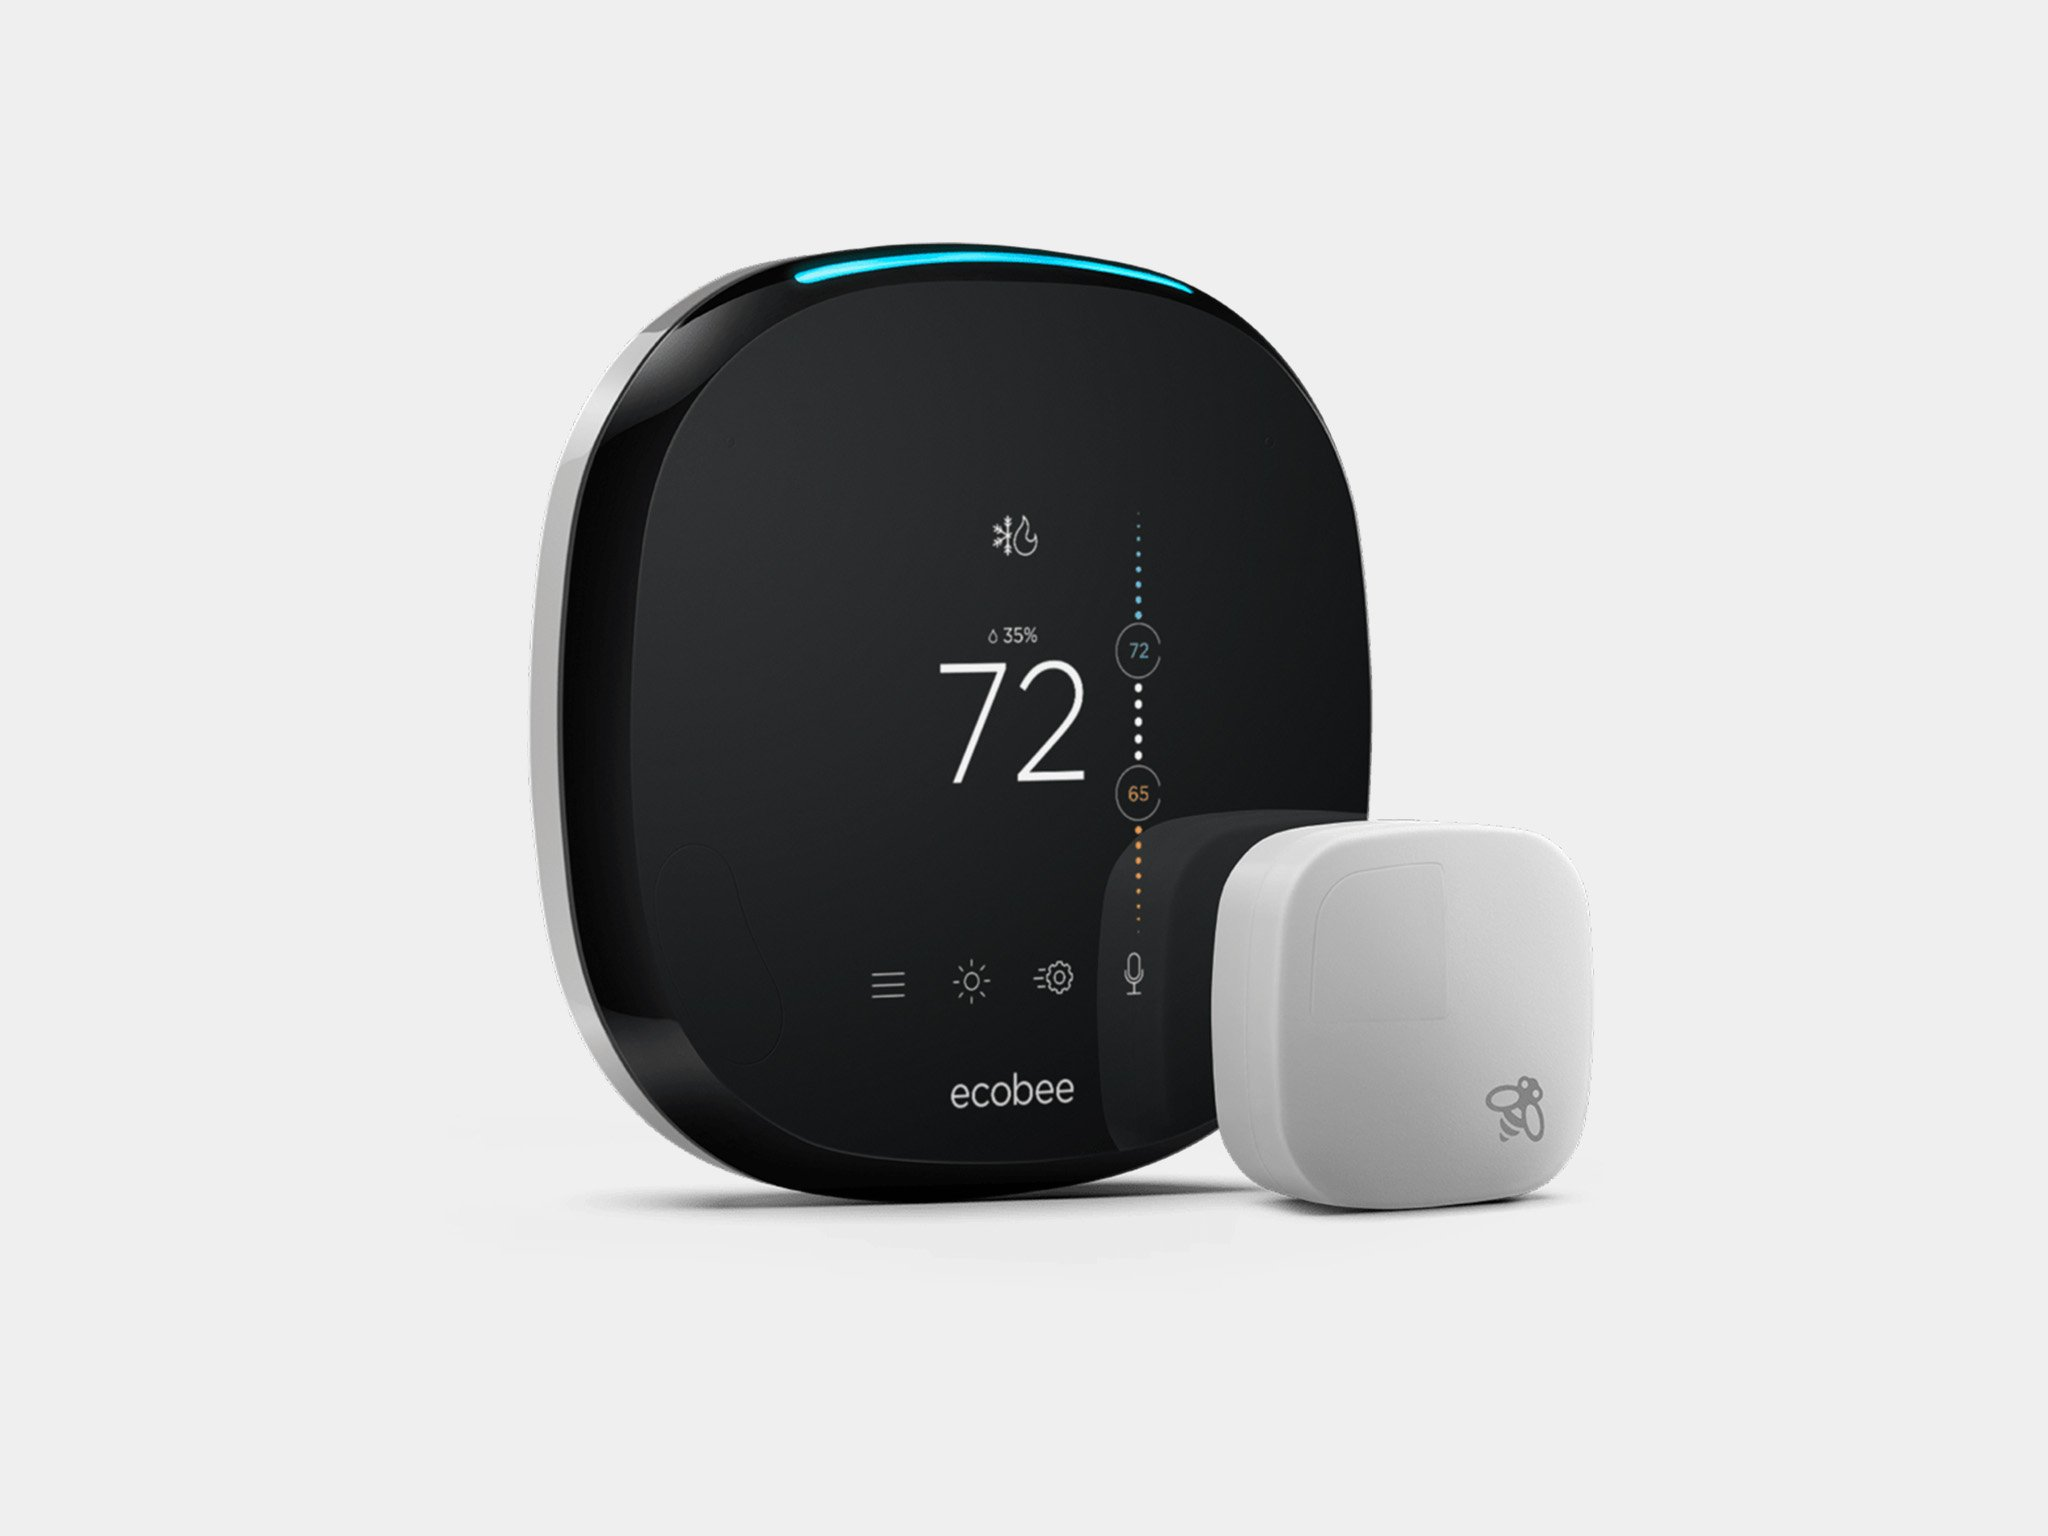 hight resolution of ecobee4 smart thermostat everything you need to know